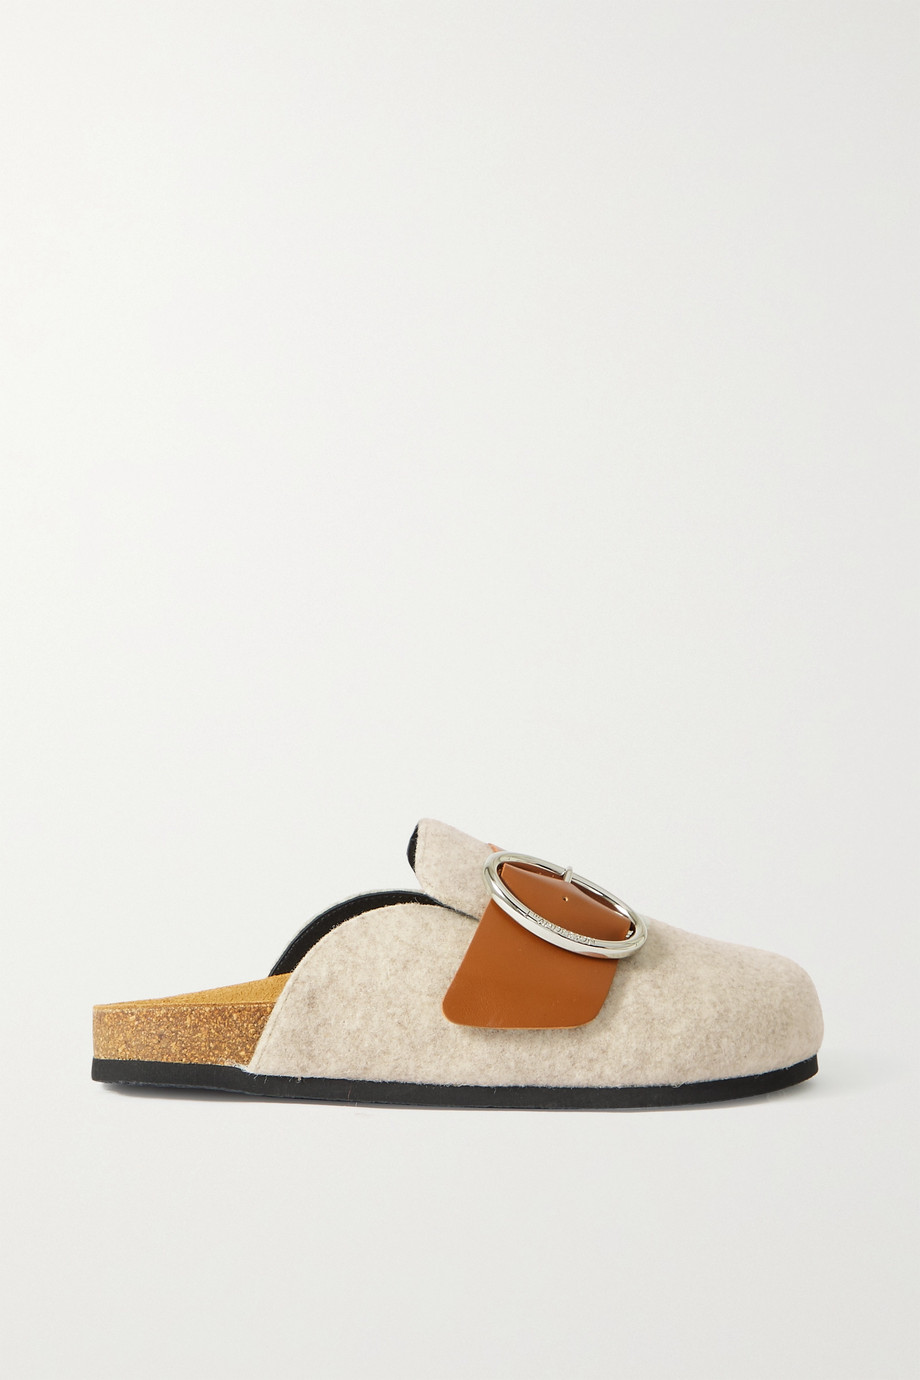 JW Anderson Buckled leather-trimmed felt slippers